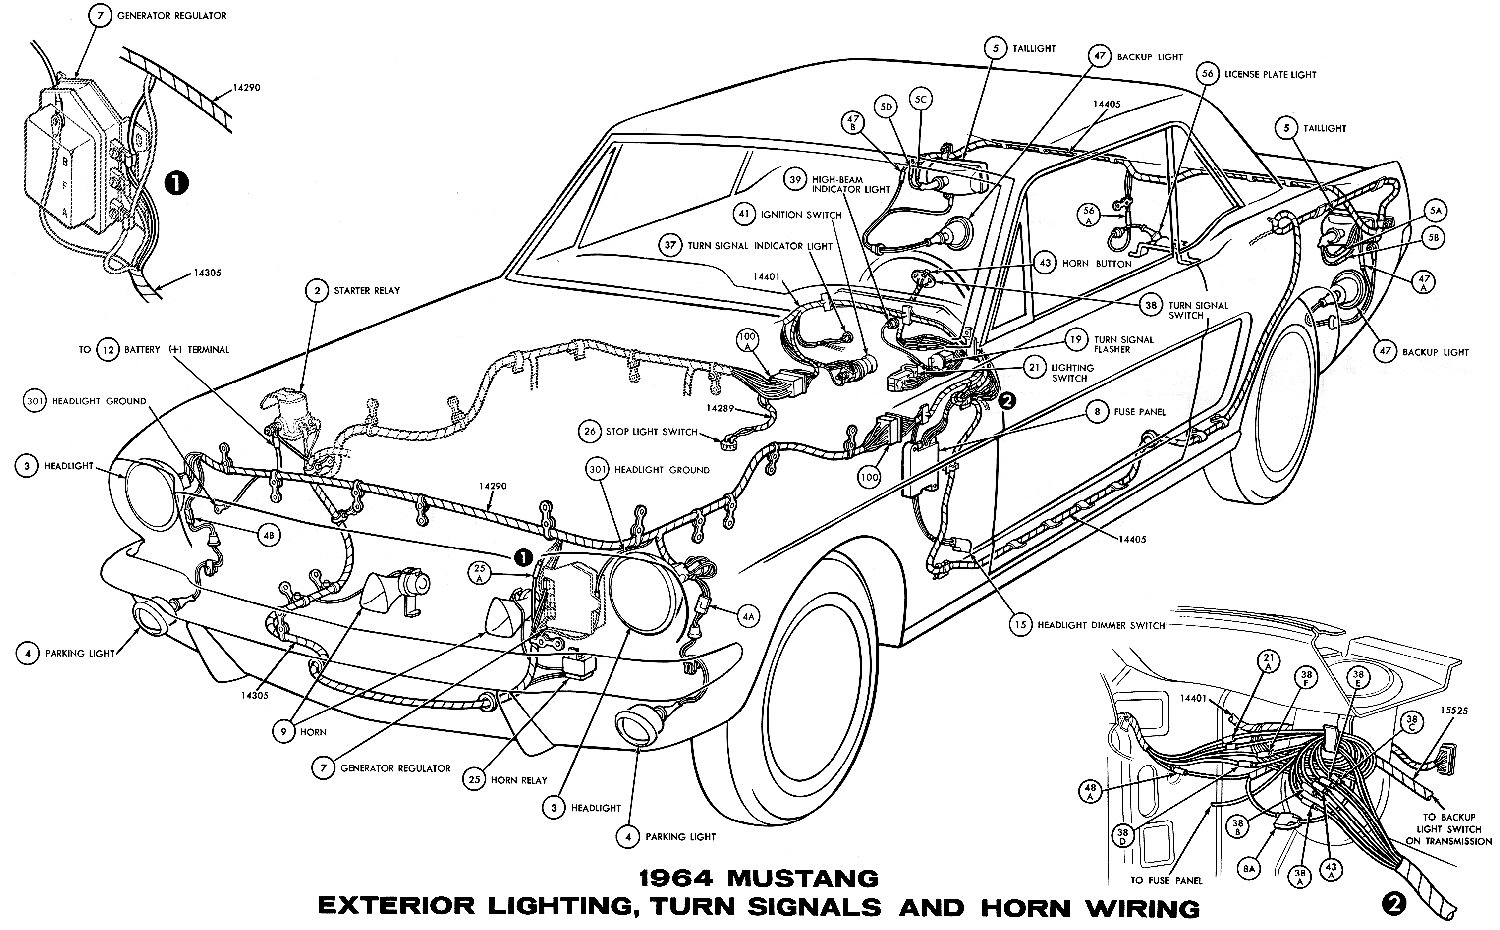 1964 Mustang Wiring Diagrams on 1966 ford galaxie wiring diagram